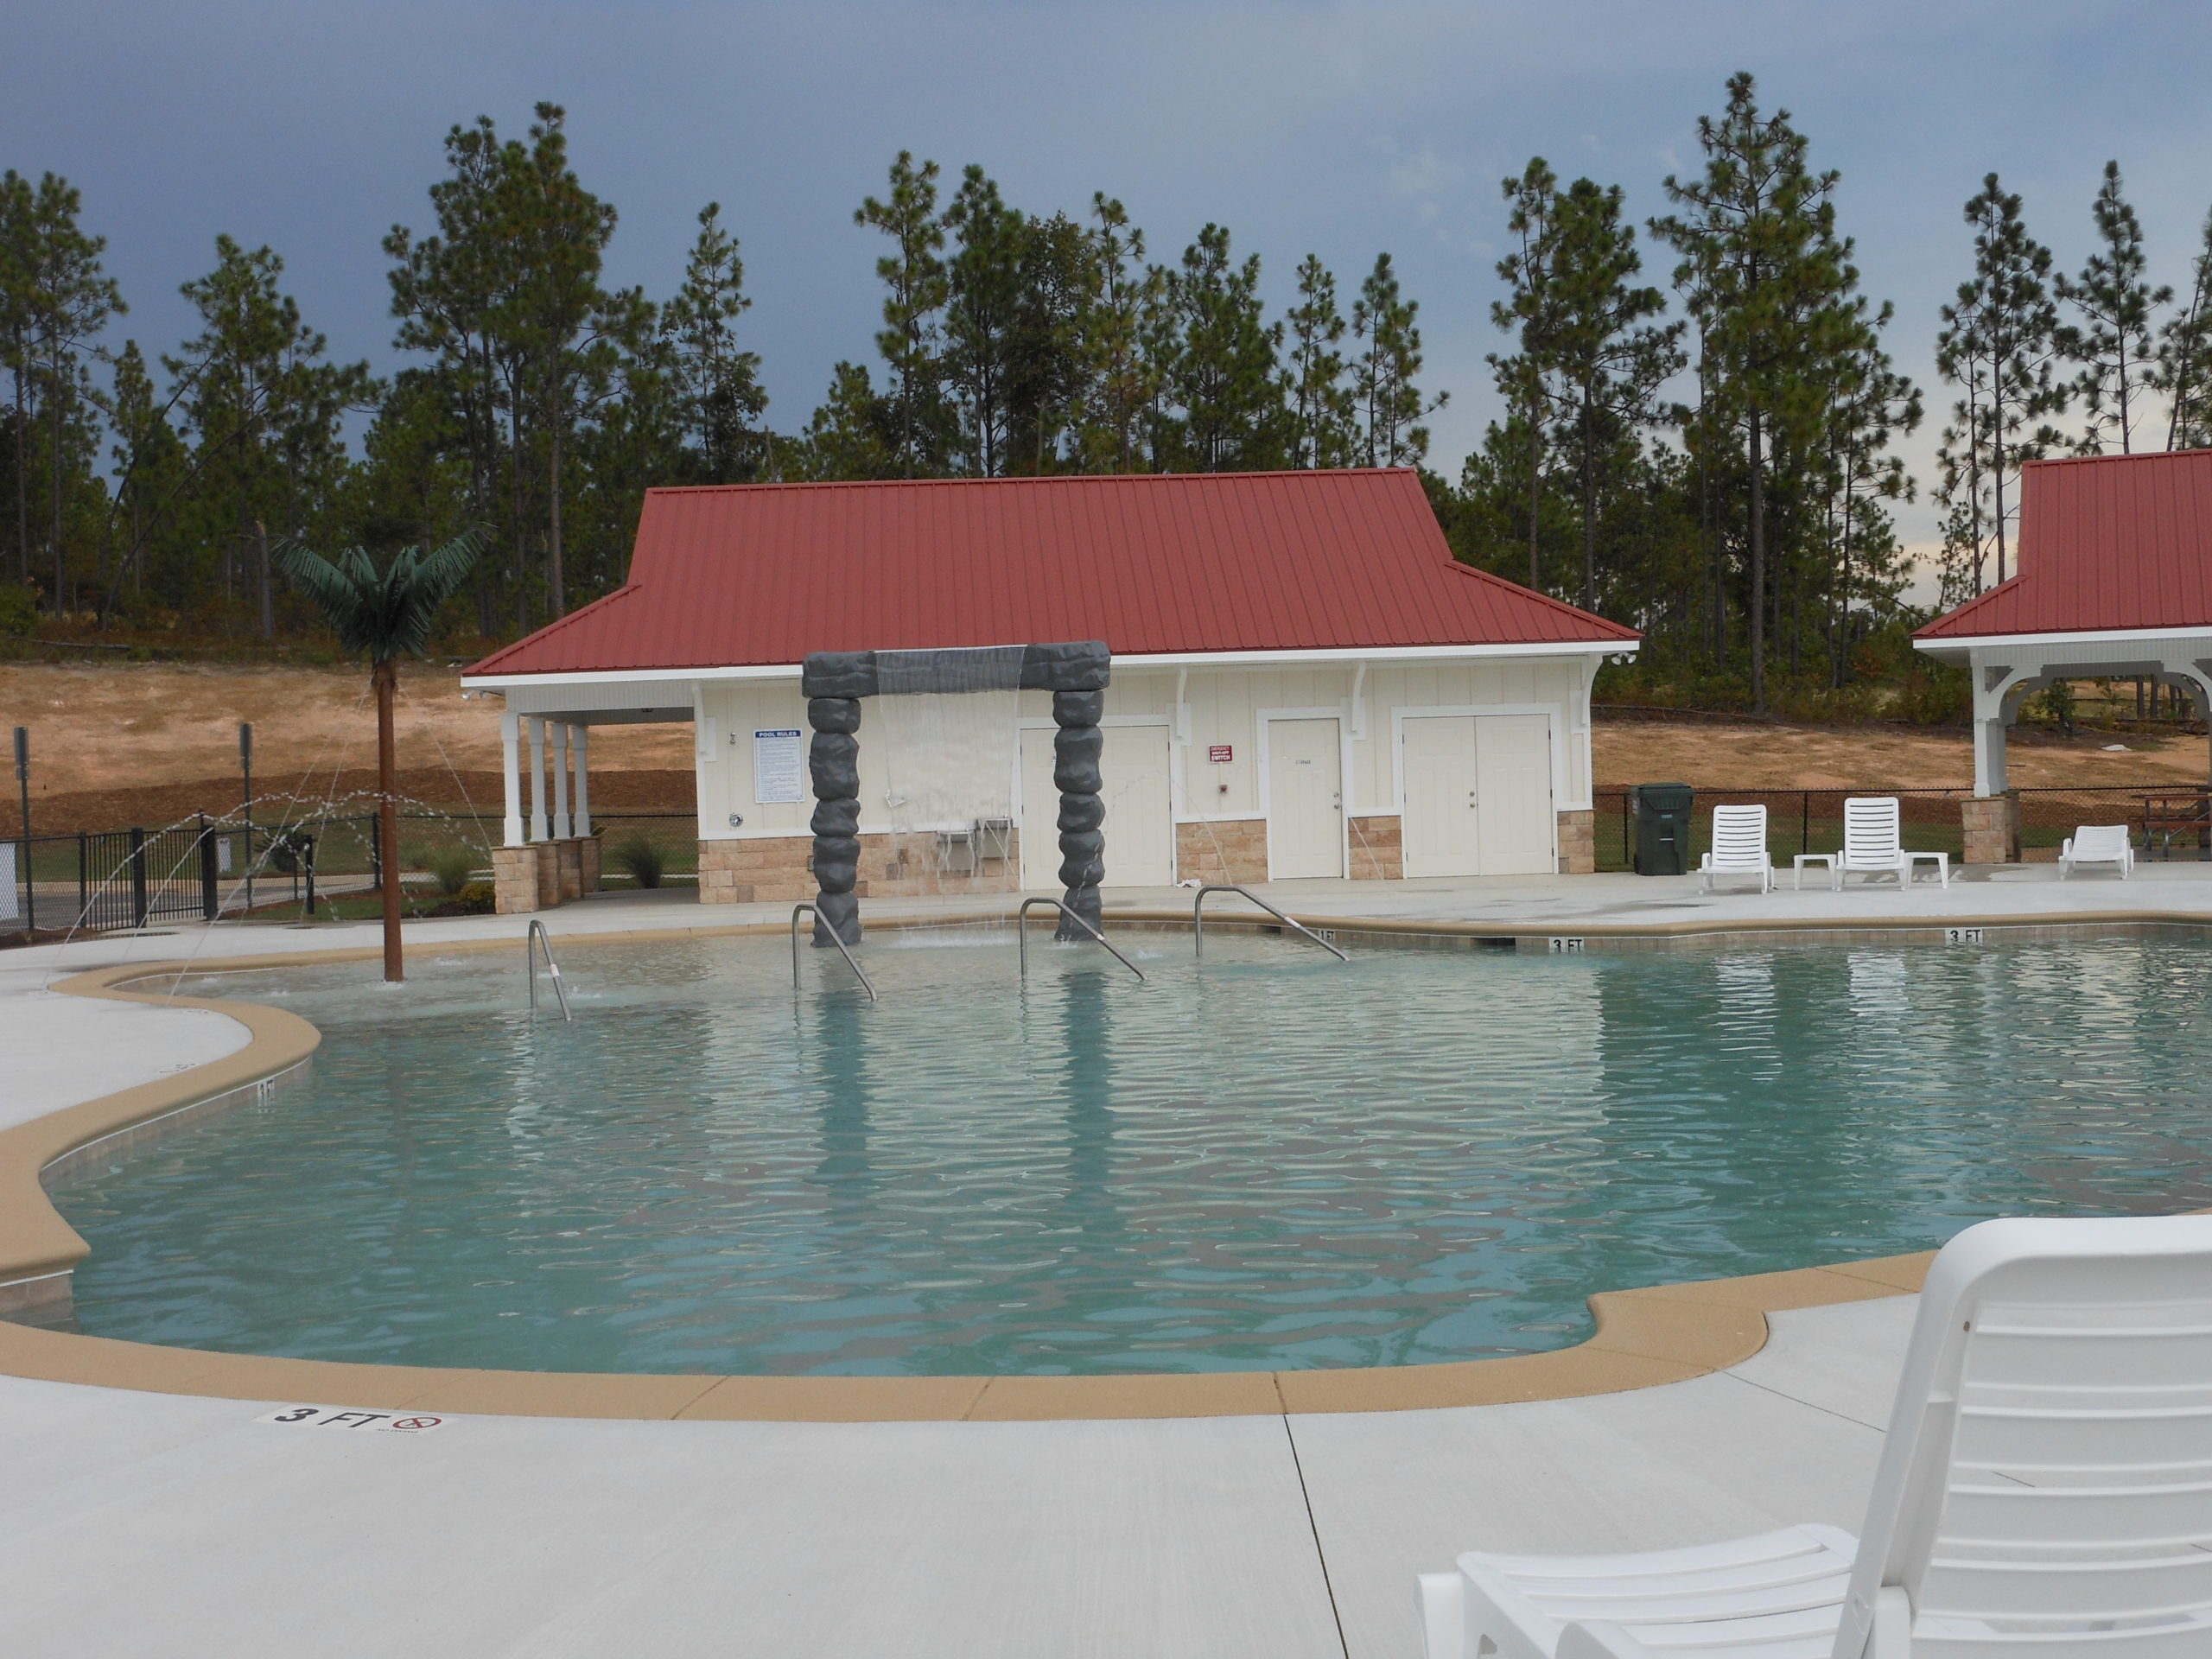 An image of the pool house at Greggs mill.